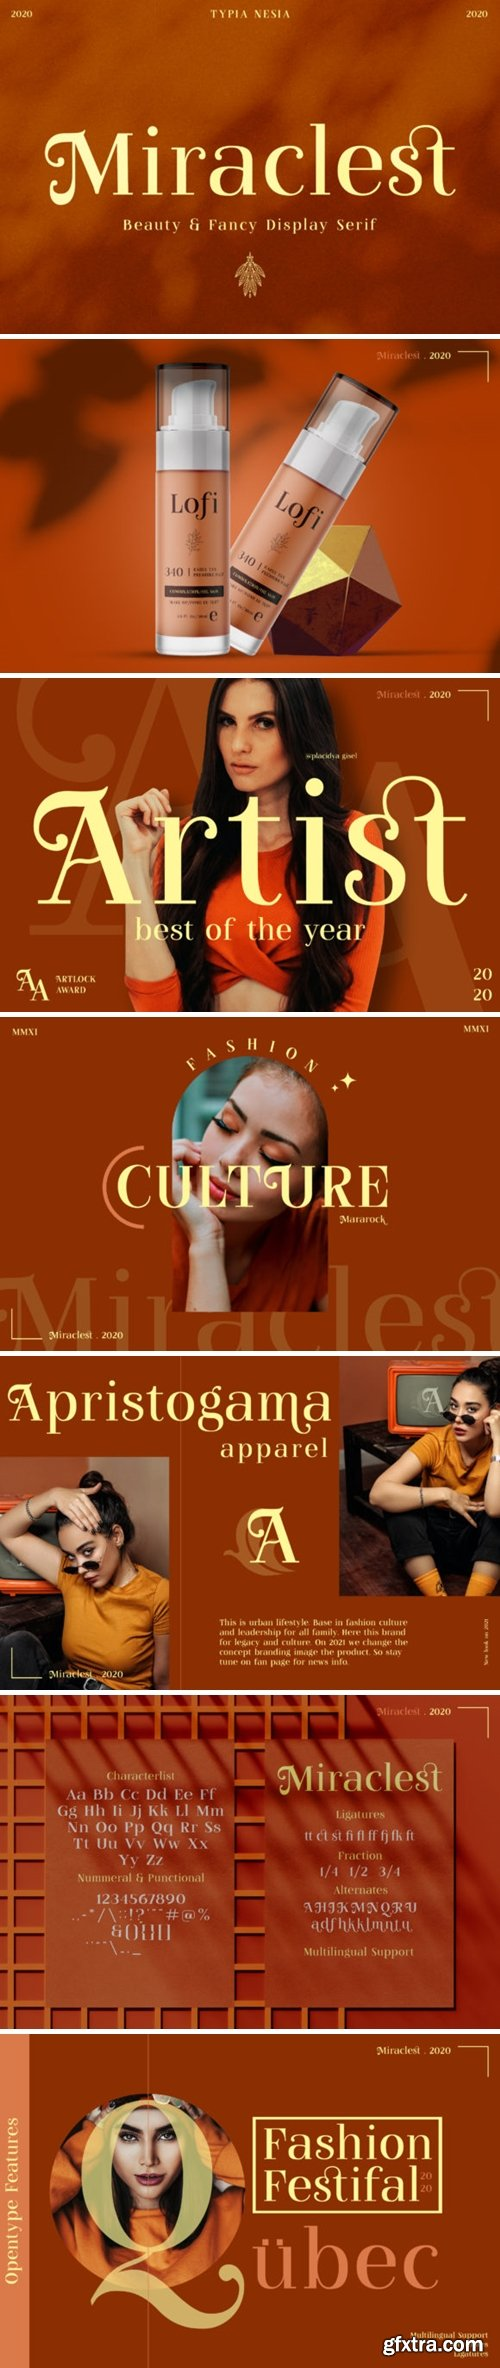 Miraclest Font